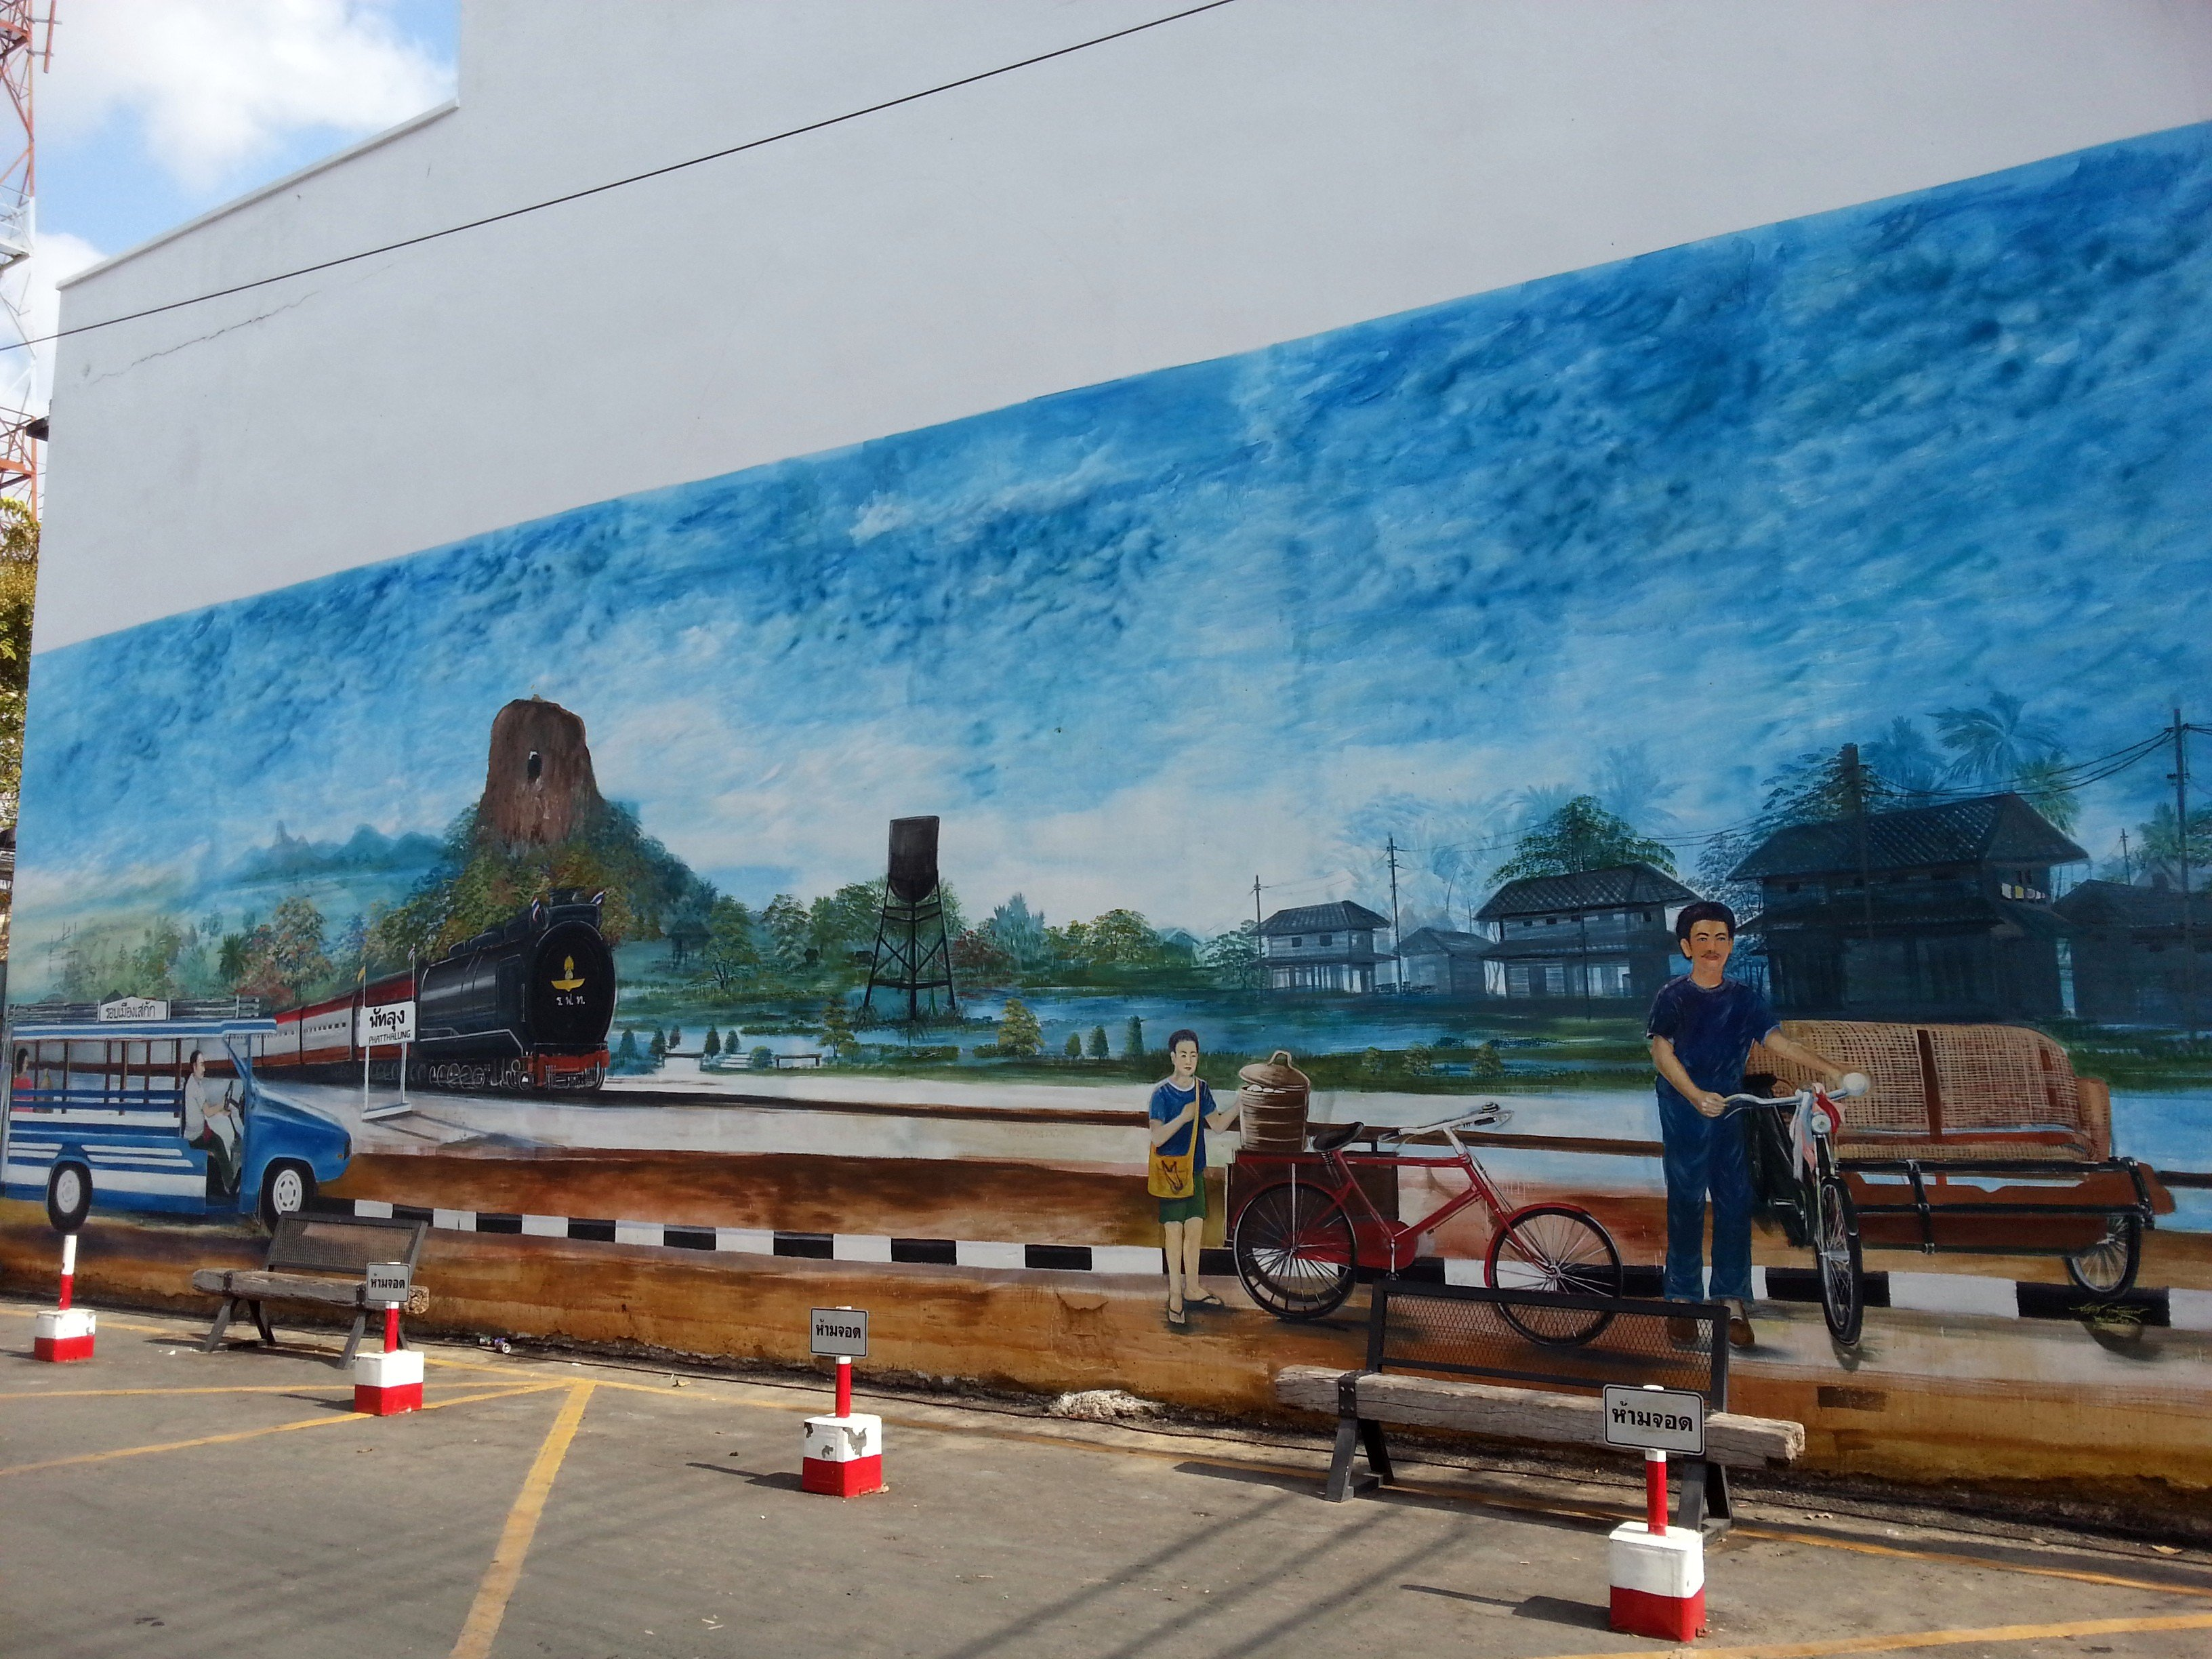 Mural by Phatthalung Railway Station